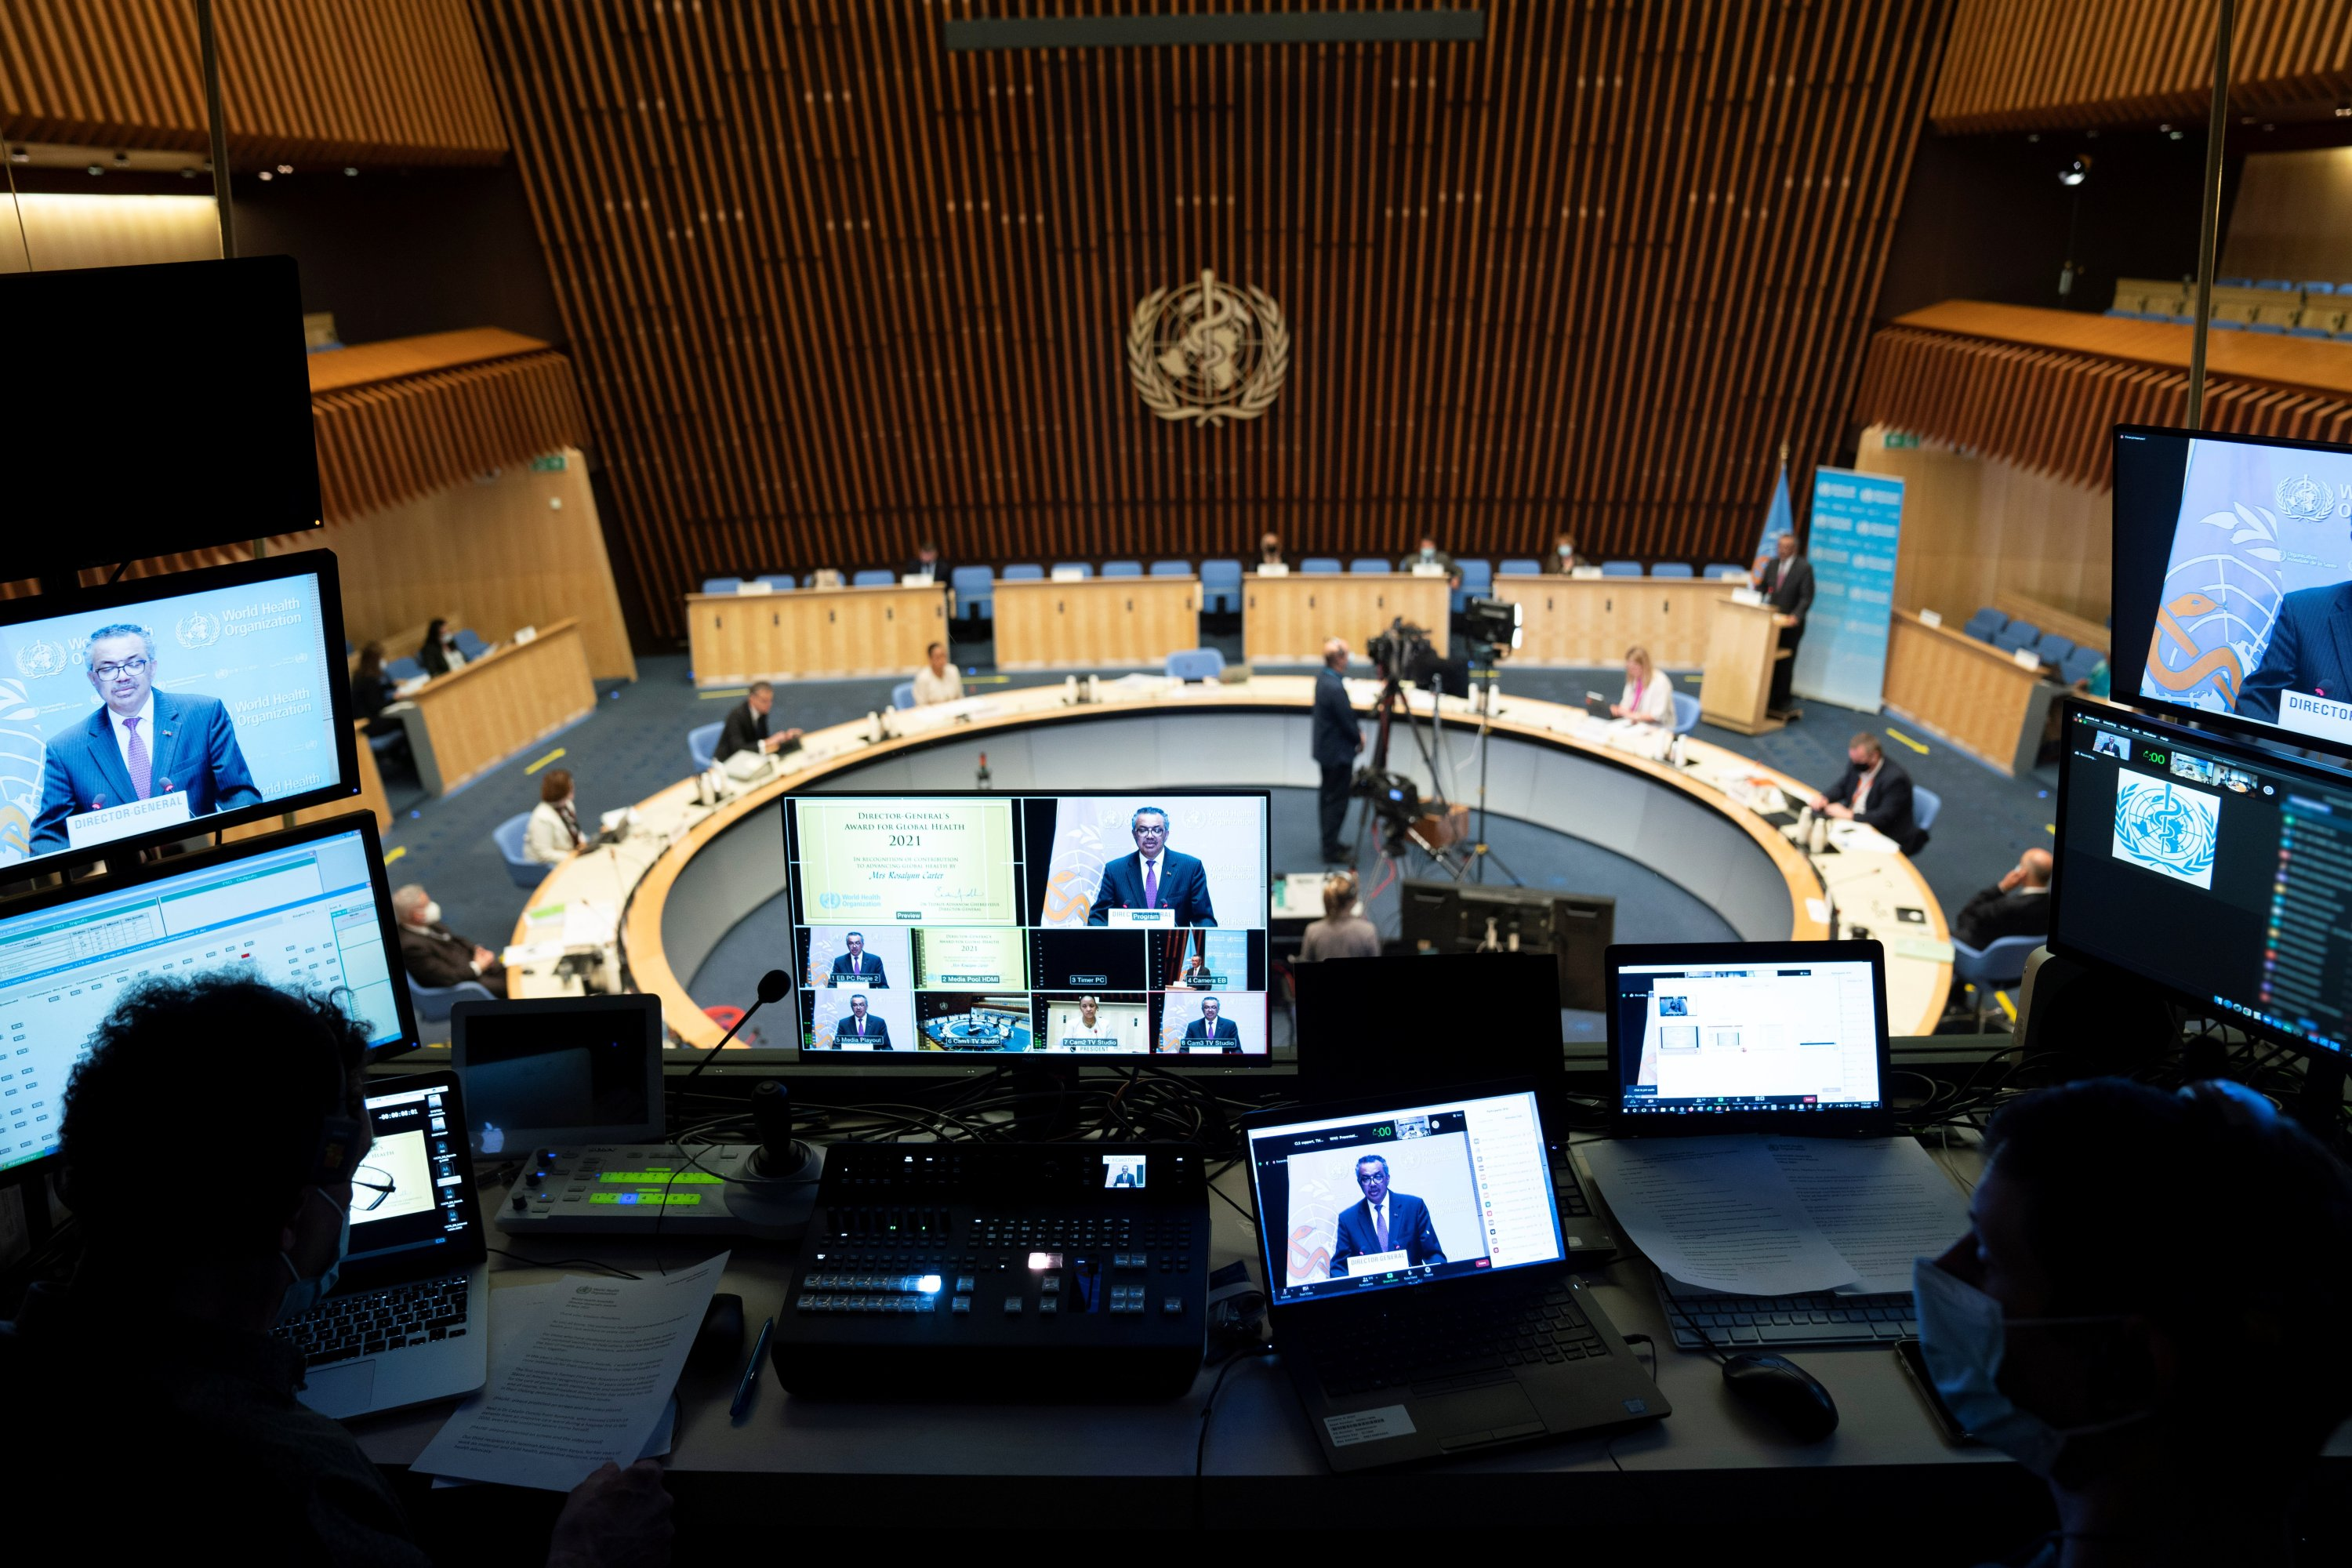 World Health Organization (WHO) Director-General Tedros Adhanom Ghebreyesus is seen on screens as he attends the World Health Assembly (WHA) amid the COVID-19 pandemic in Geneva, Switzerland, May 24, 2021. (Christopher Black/World Health Organization/Handout via Reuters)